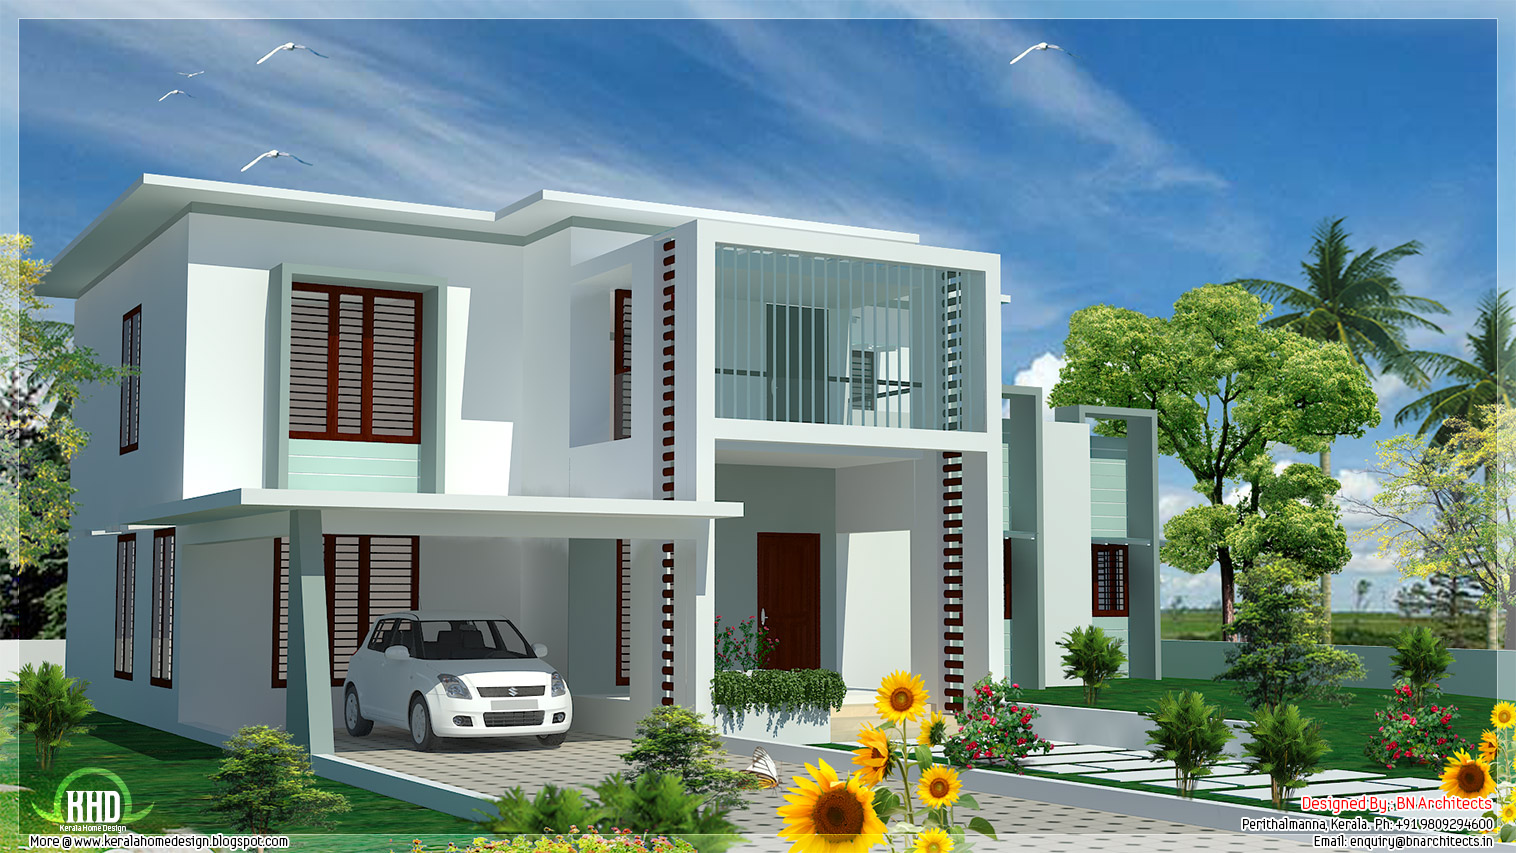 4 bedroom modern flat roof house